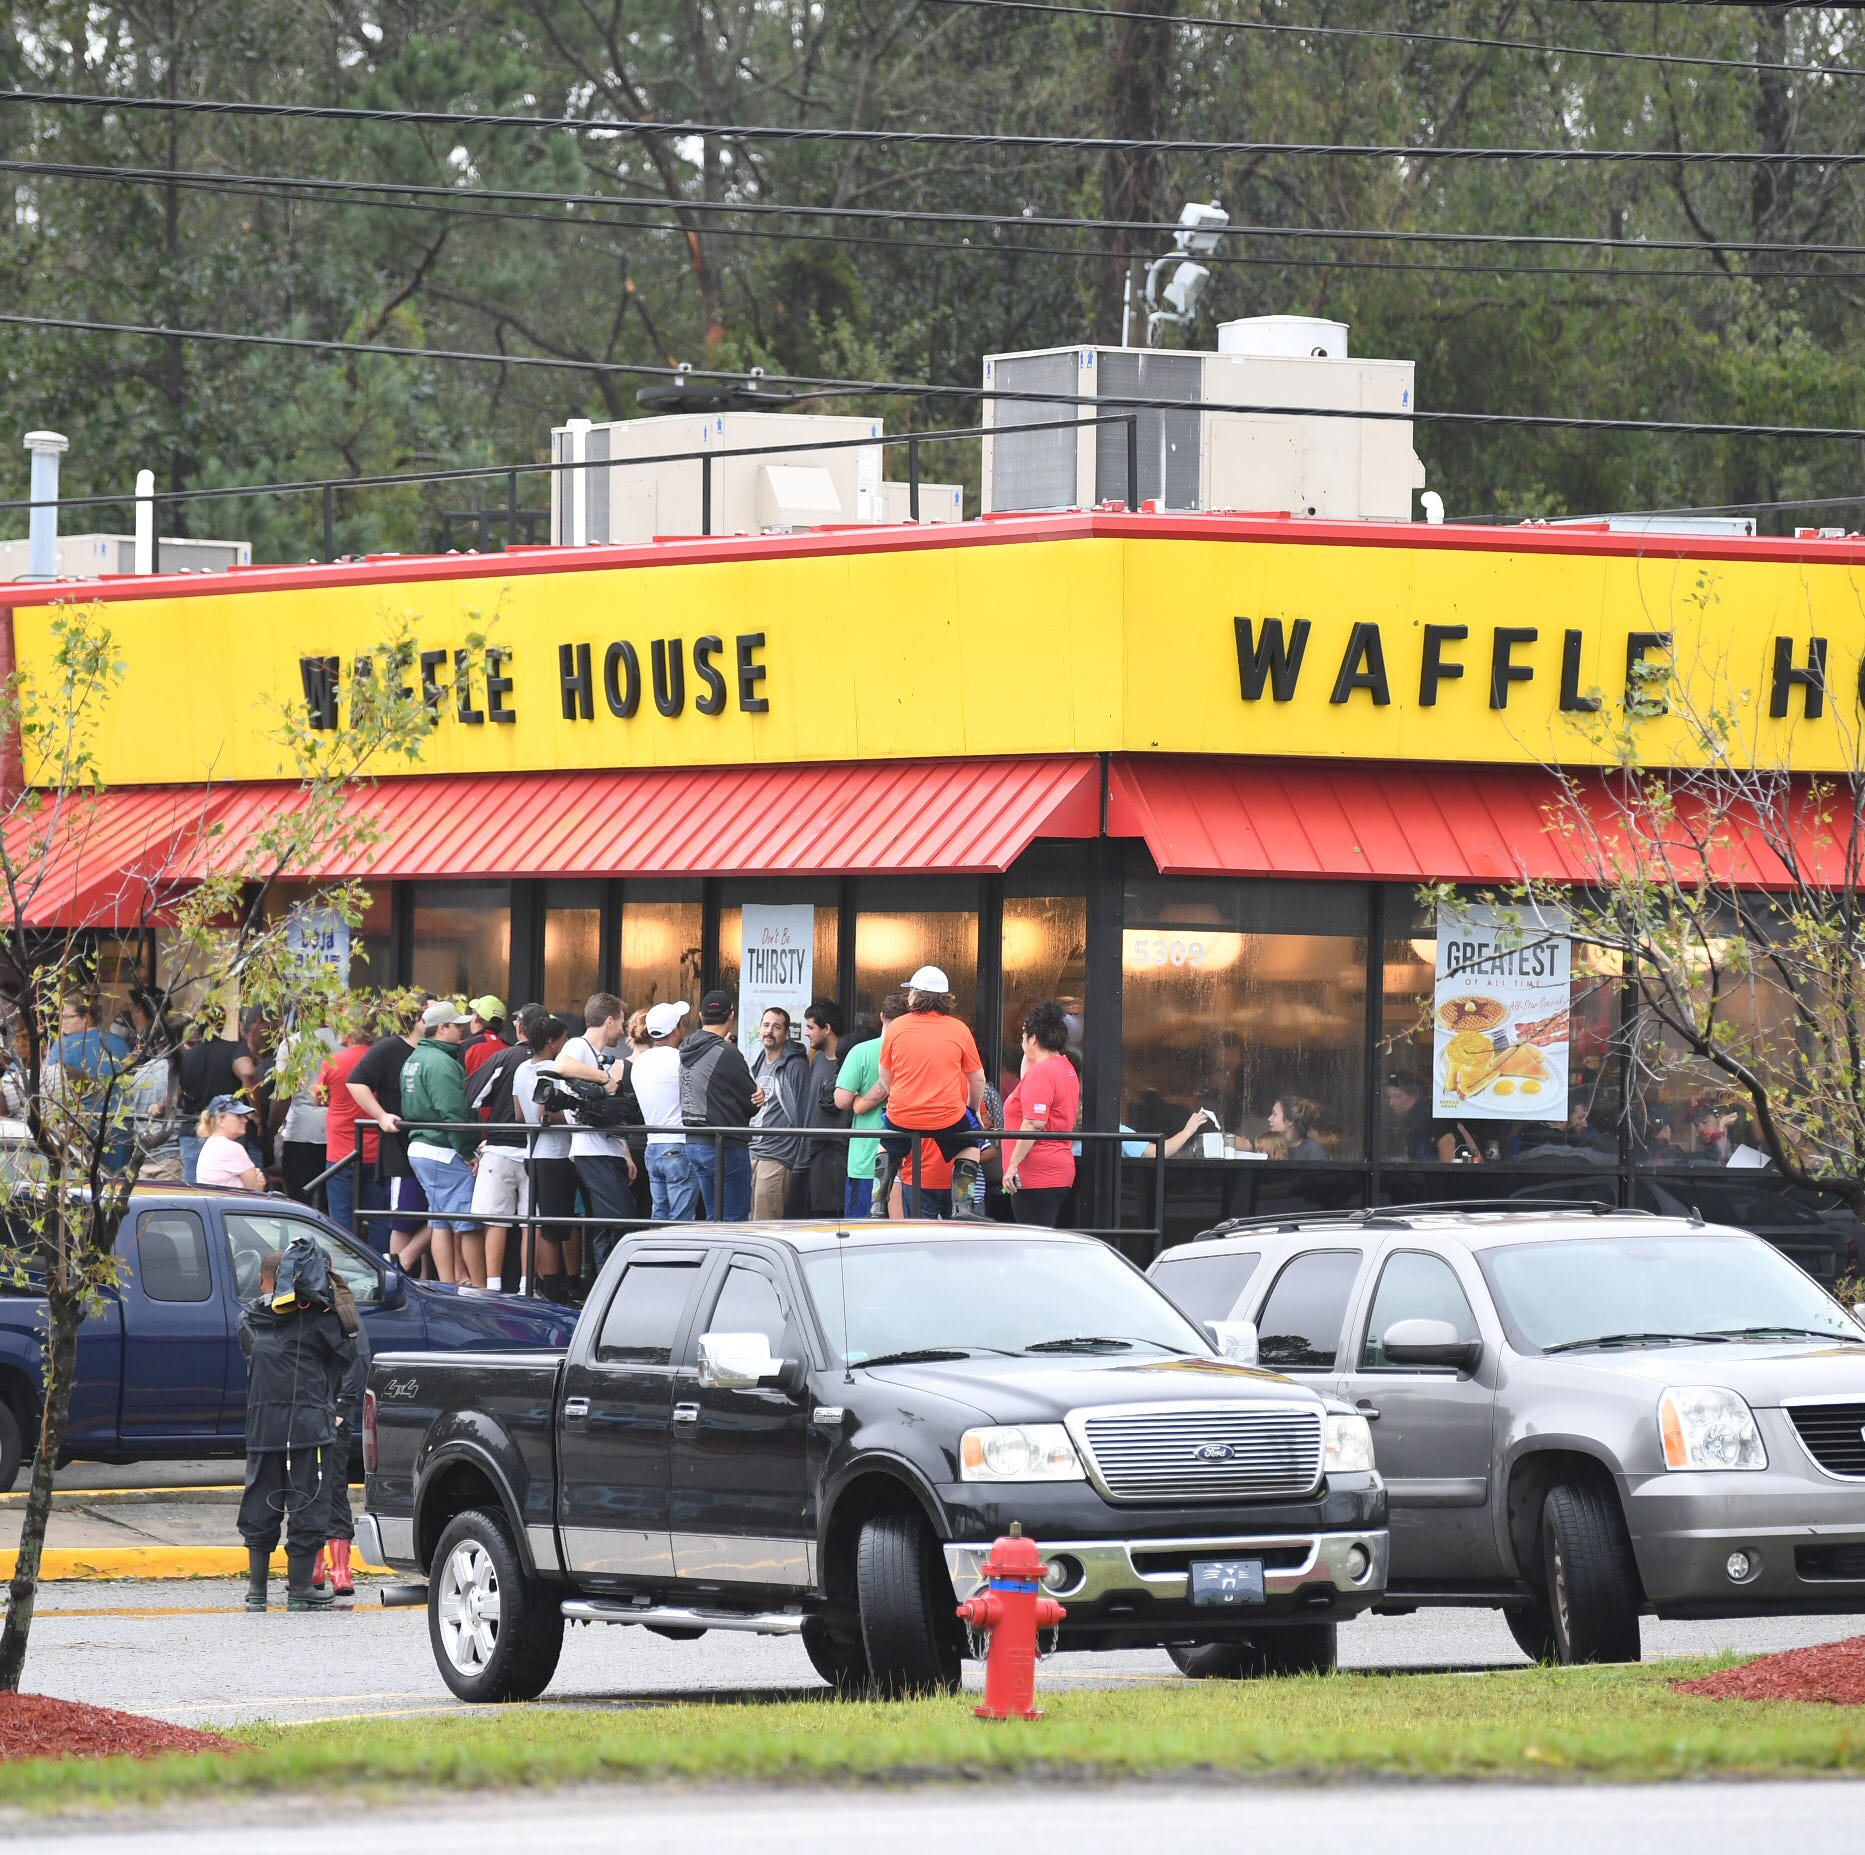 Oxford mayor takes to Twitter to woo Waffle House for Ole Miss students